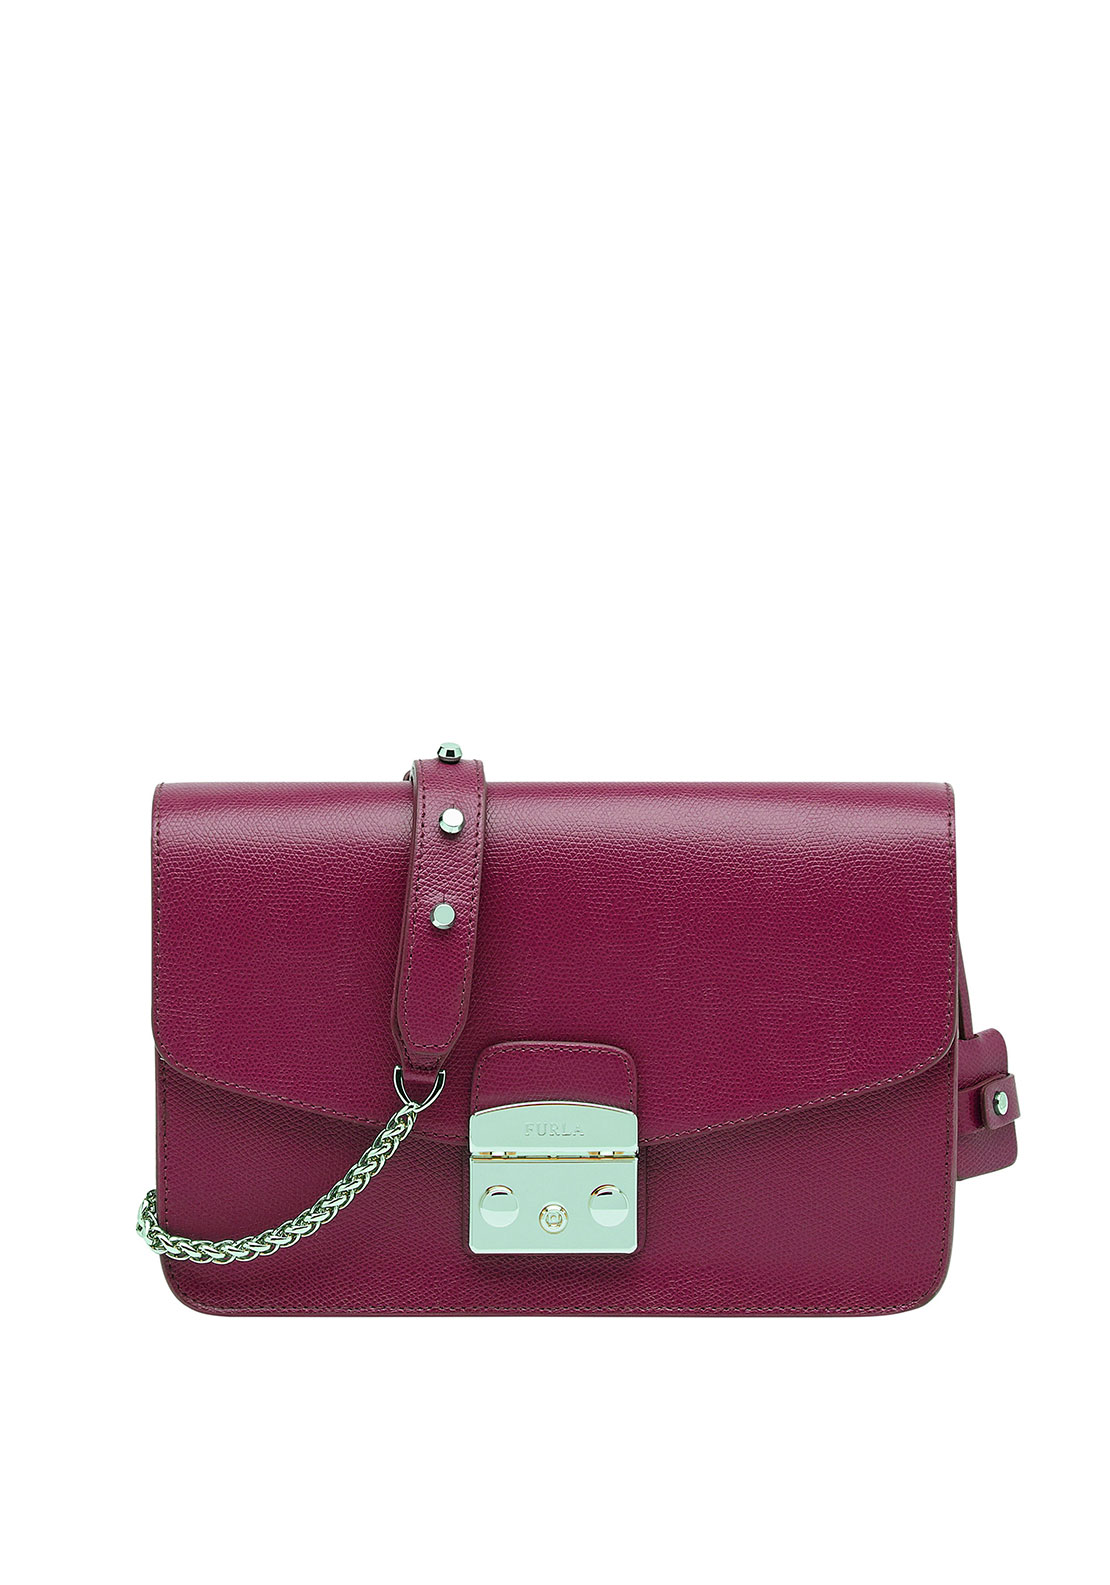 Furla Metropolis Leather Crossbody Small Bag, Pink